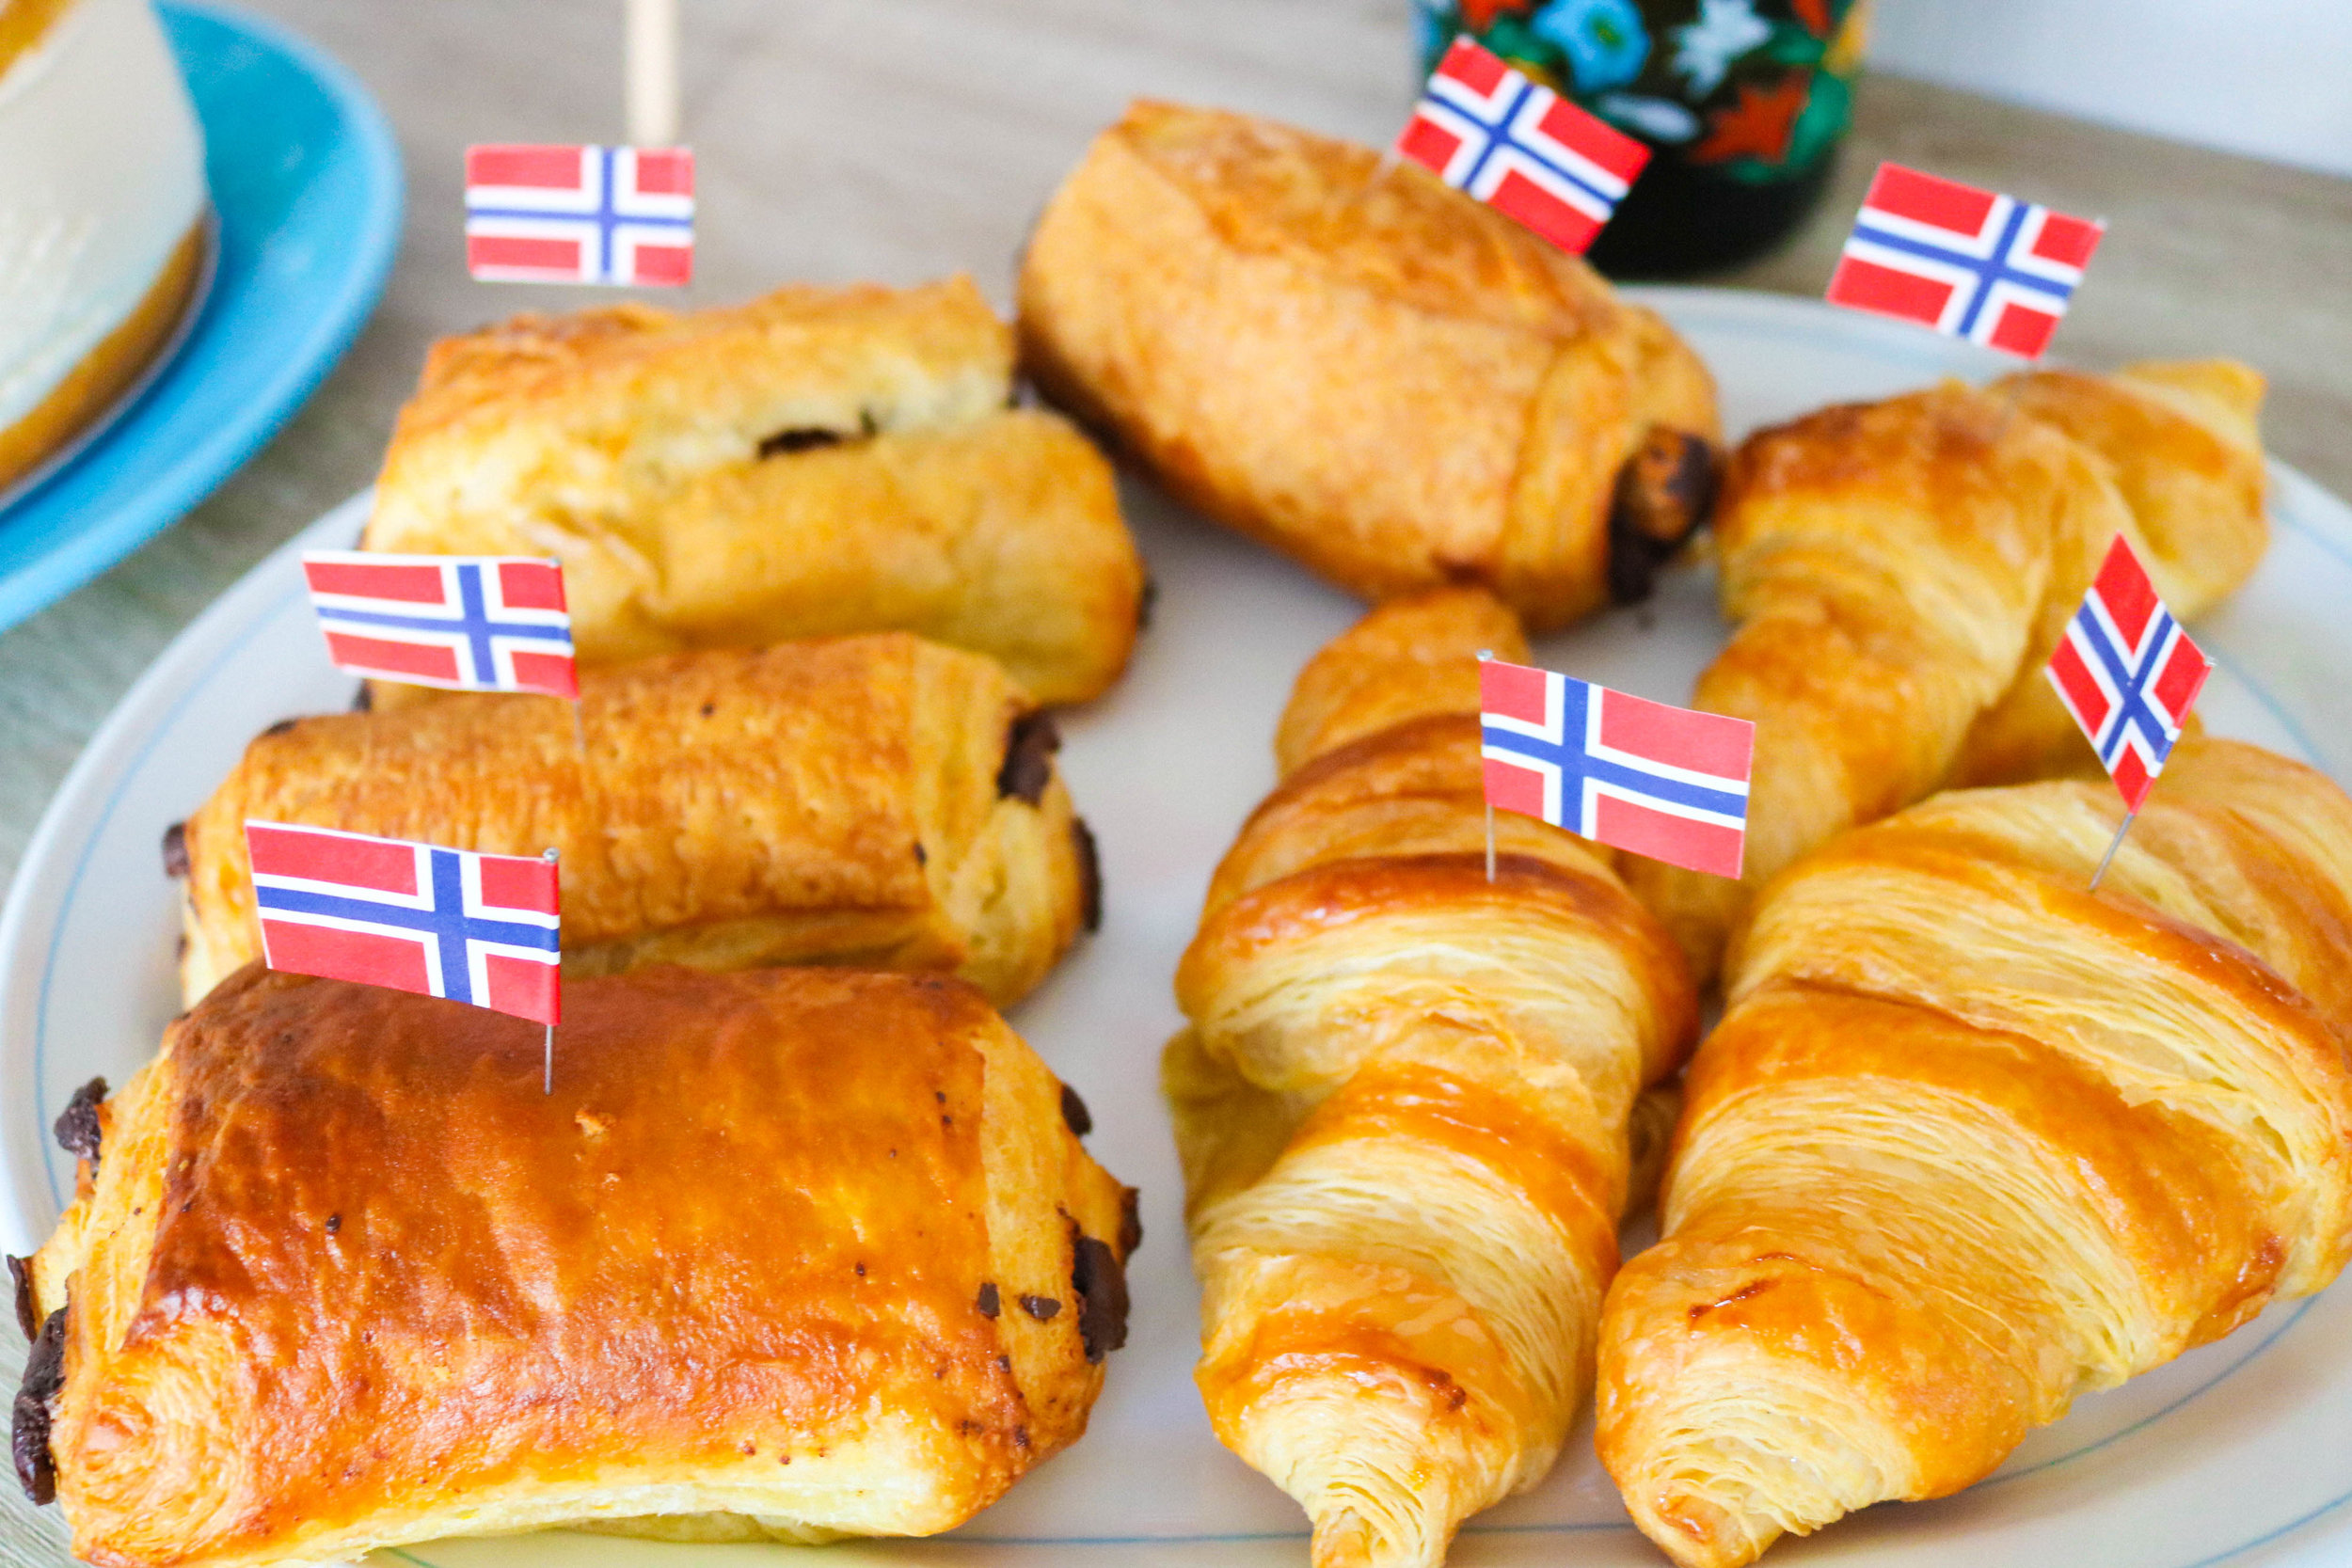 the flag says those croissants are norwegian...